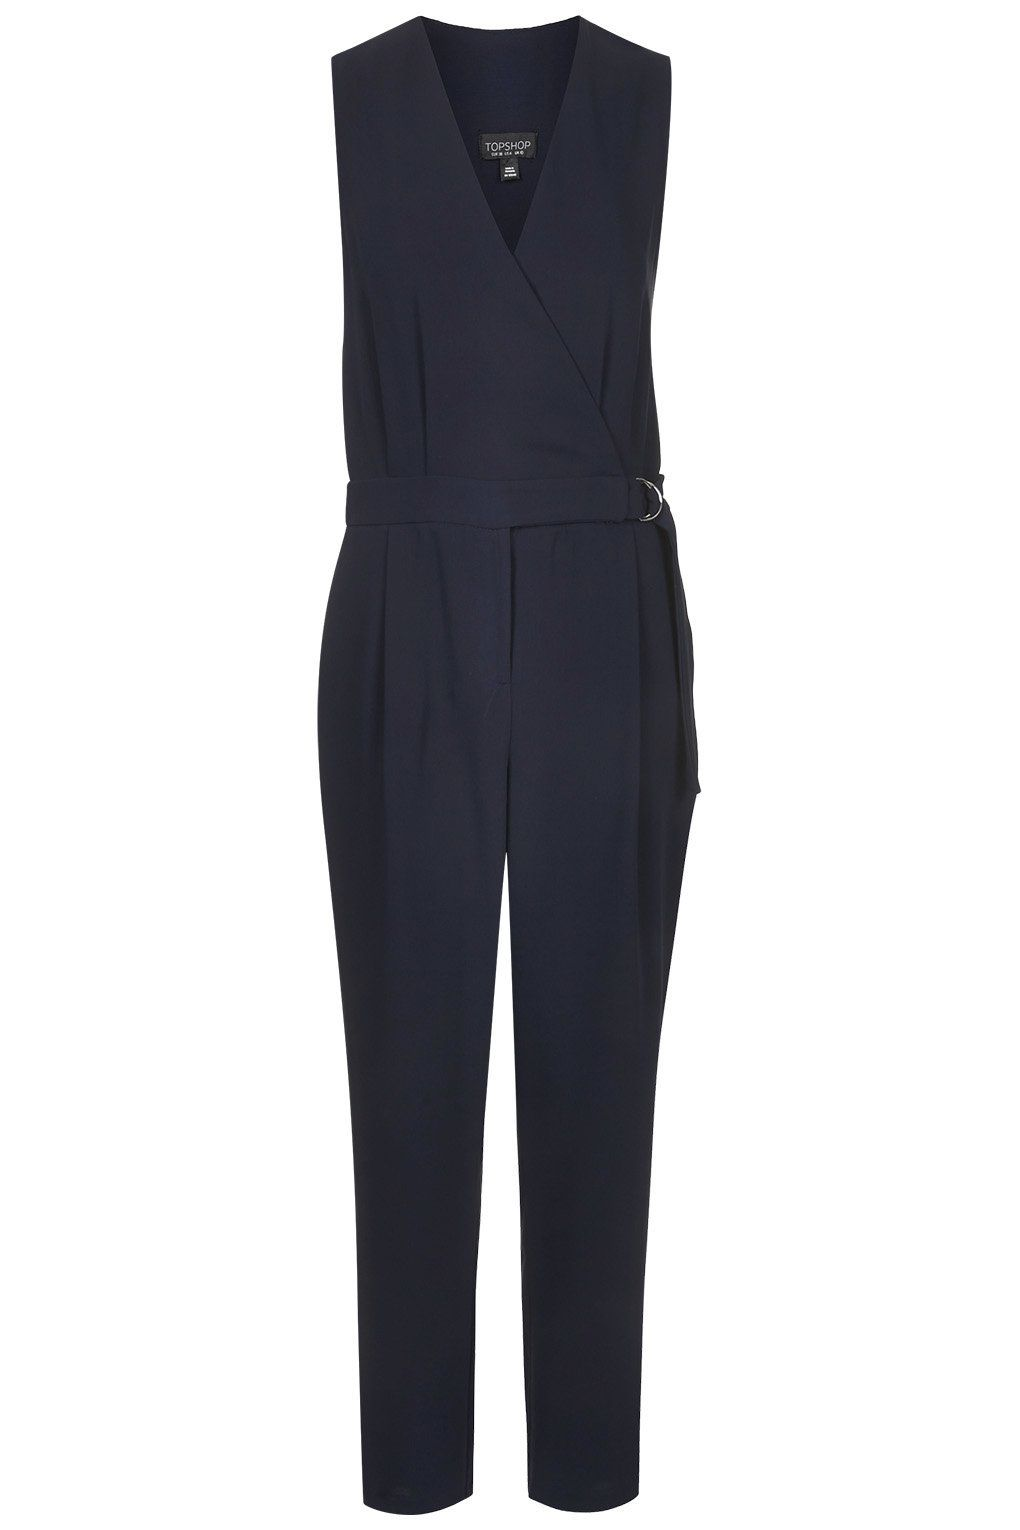 7125b3b6e498 Sleeveless D-Ring Jumpsuit - Topshop